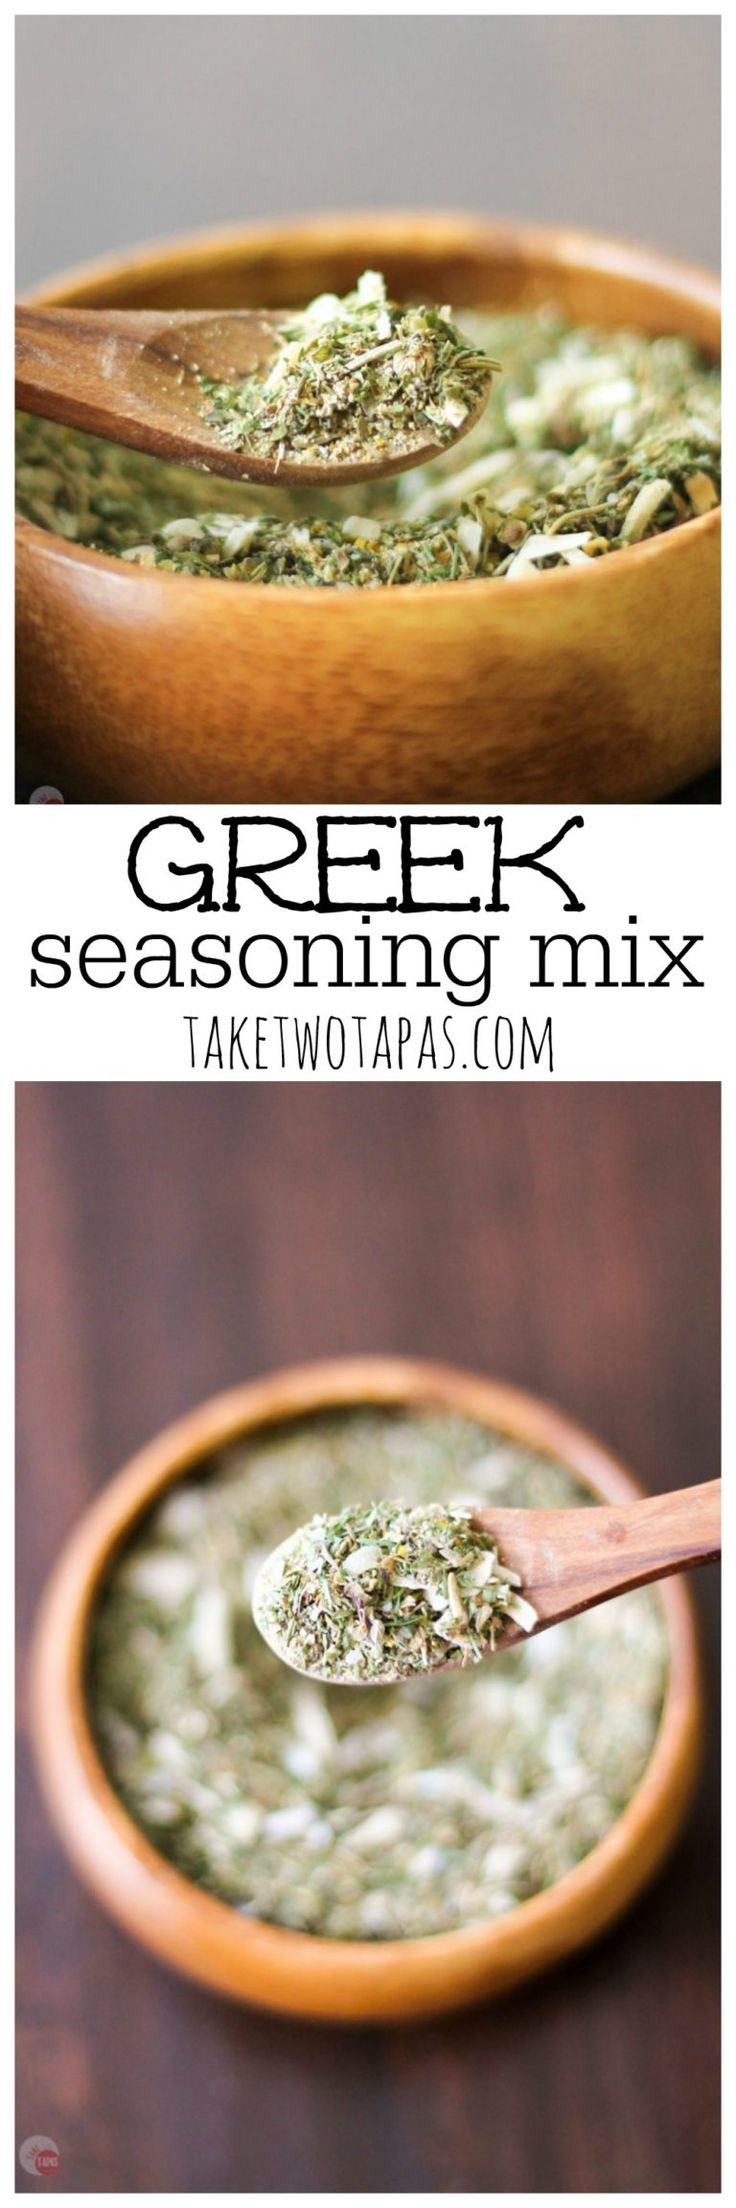 Want a new spice mix to dress up your chicken or steak? Try this Greek Seasoning Mix you can make at home! Greek Seasoning Mix Recipe   Take Two Tapas